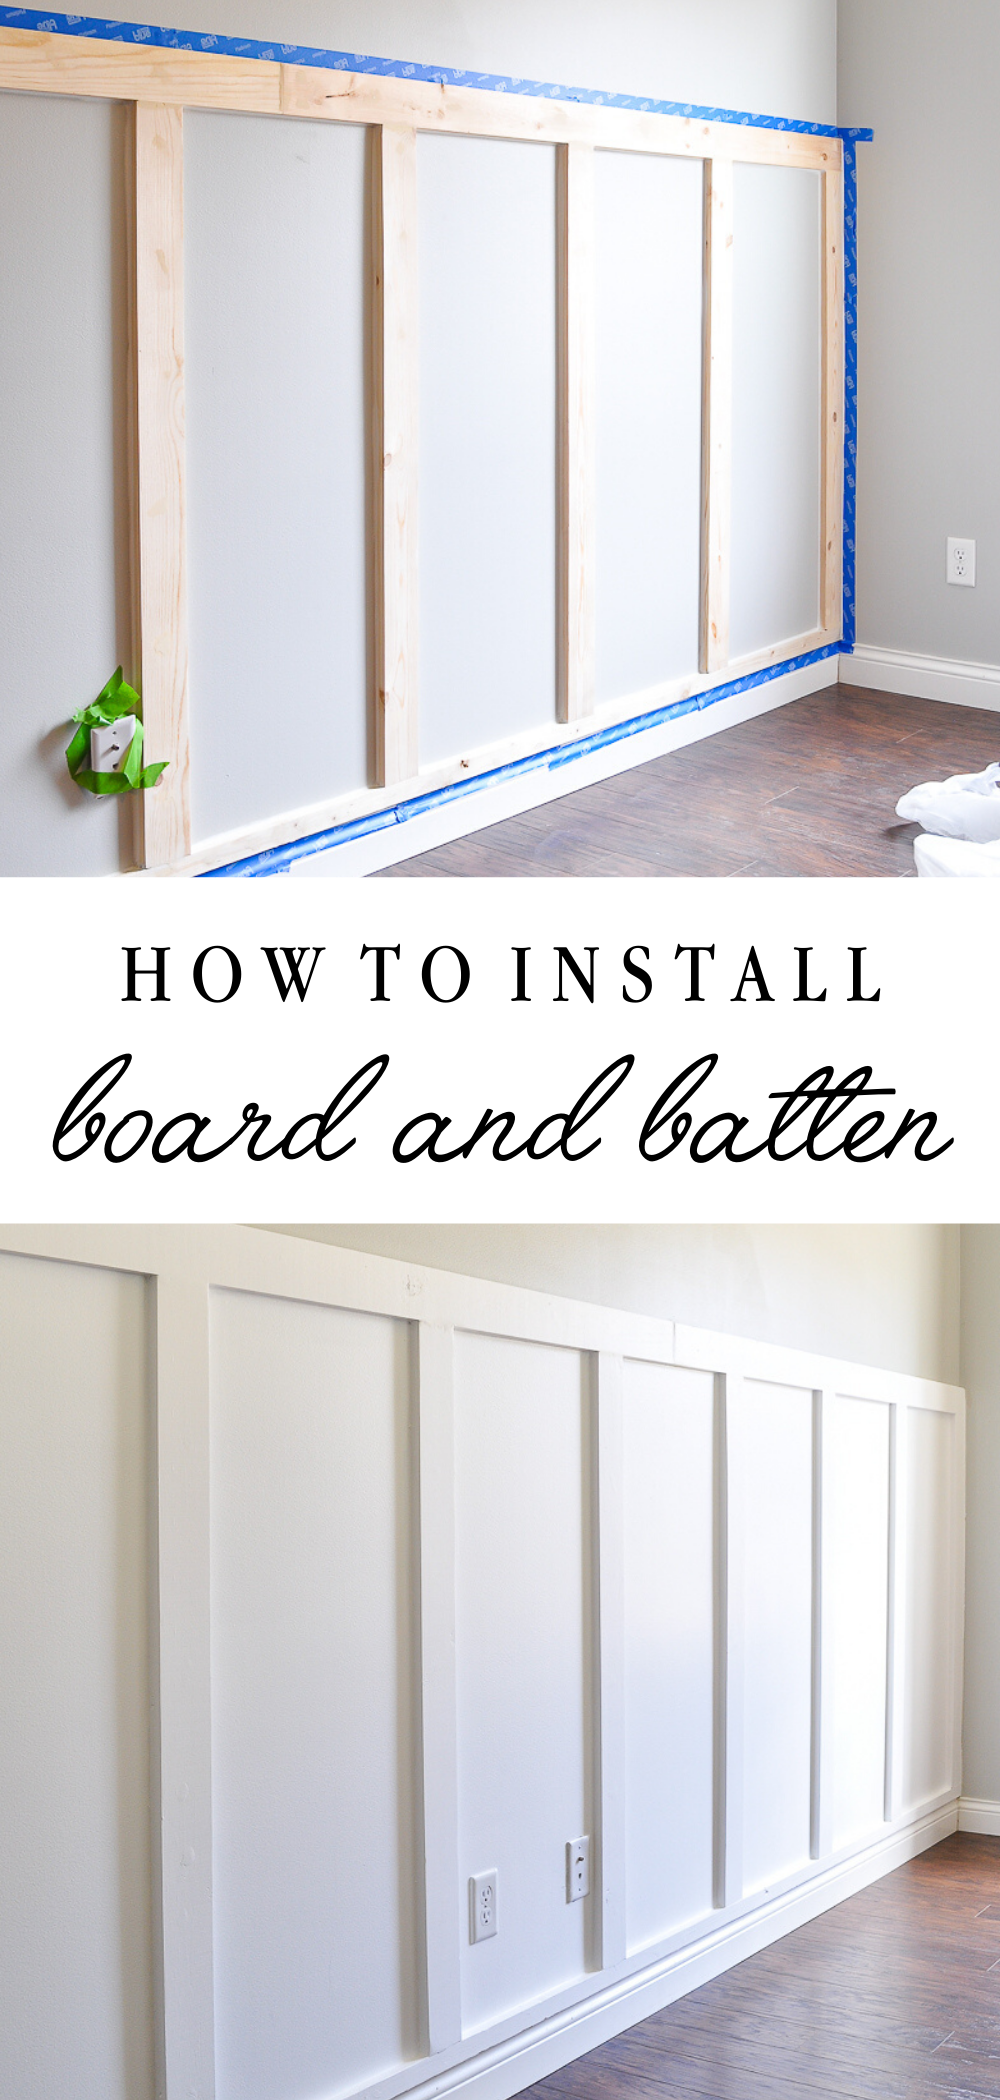 Board and Batten Tutorial